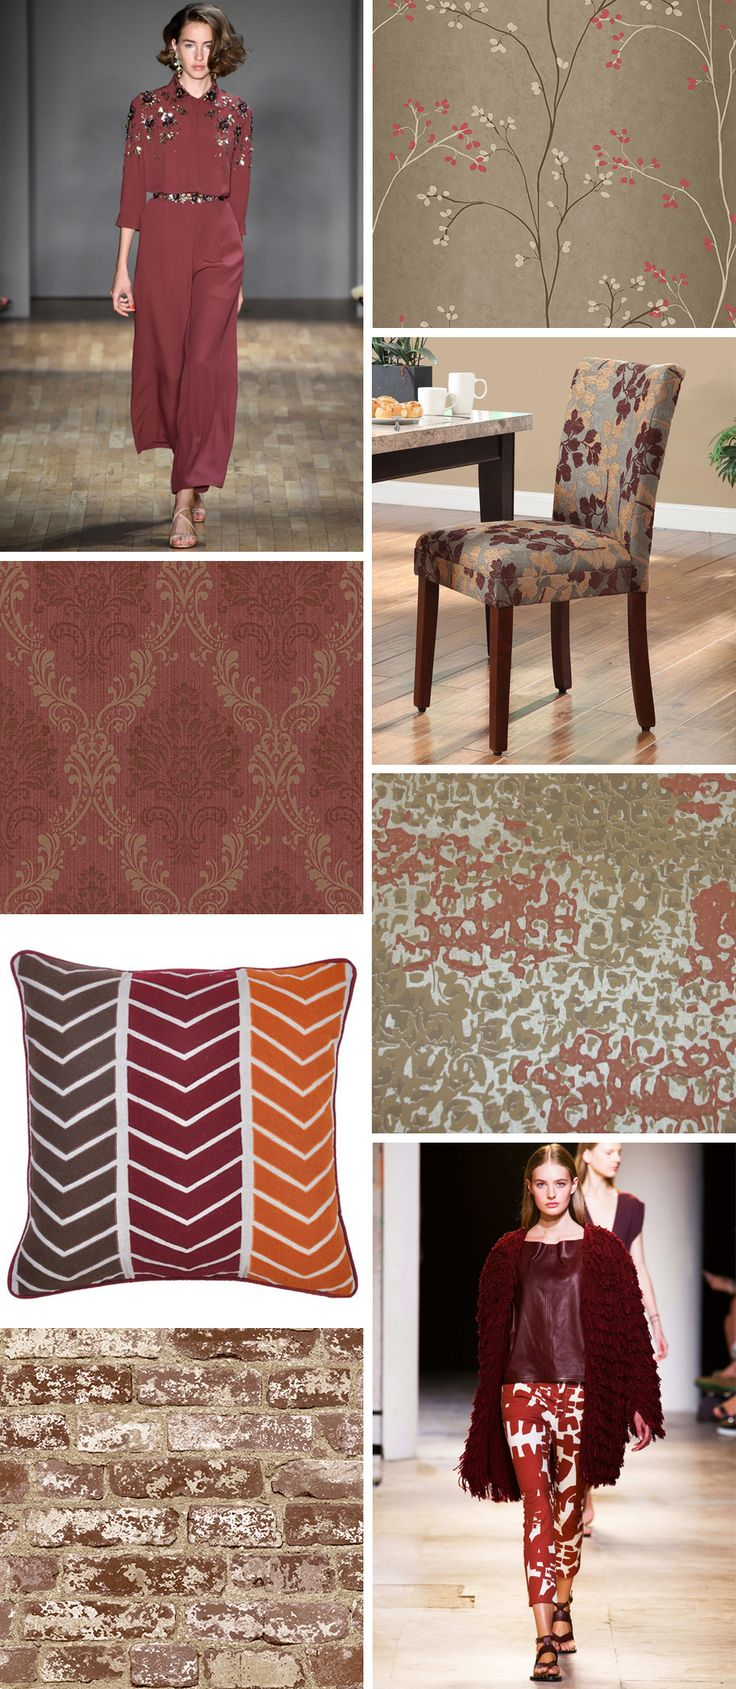 Pantone is one of the great color authorities, influencing markets at practically every level.  Pantone's Color of the Year for 2015 is Marsala.  Full bodied, intensely rich and multi-faceted, it ranges from amber to garnet and is described as hearty and unifying.